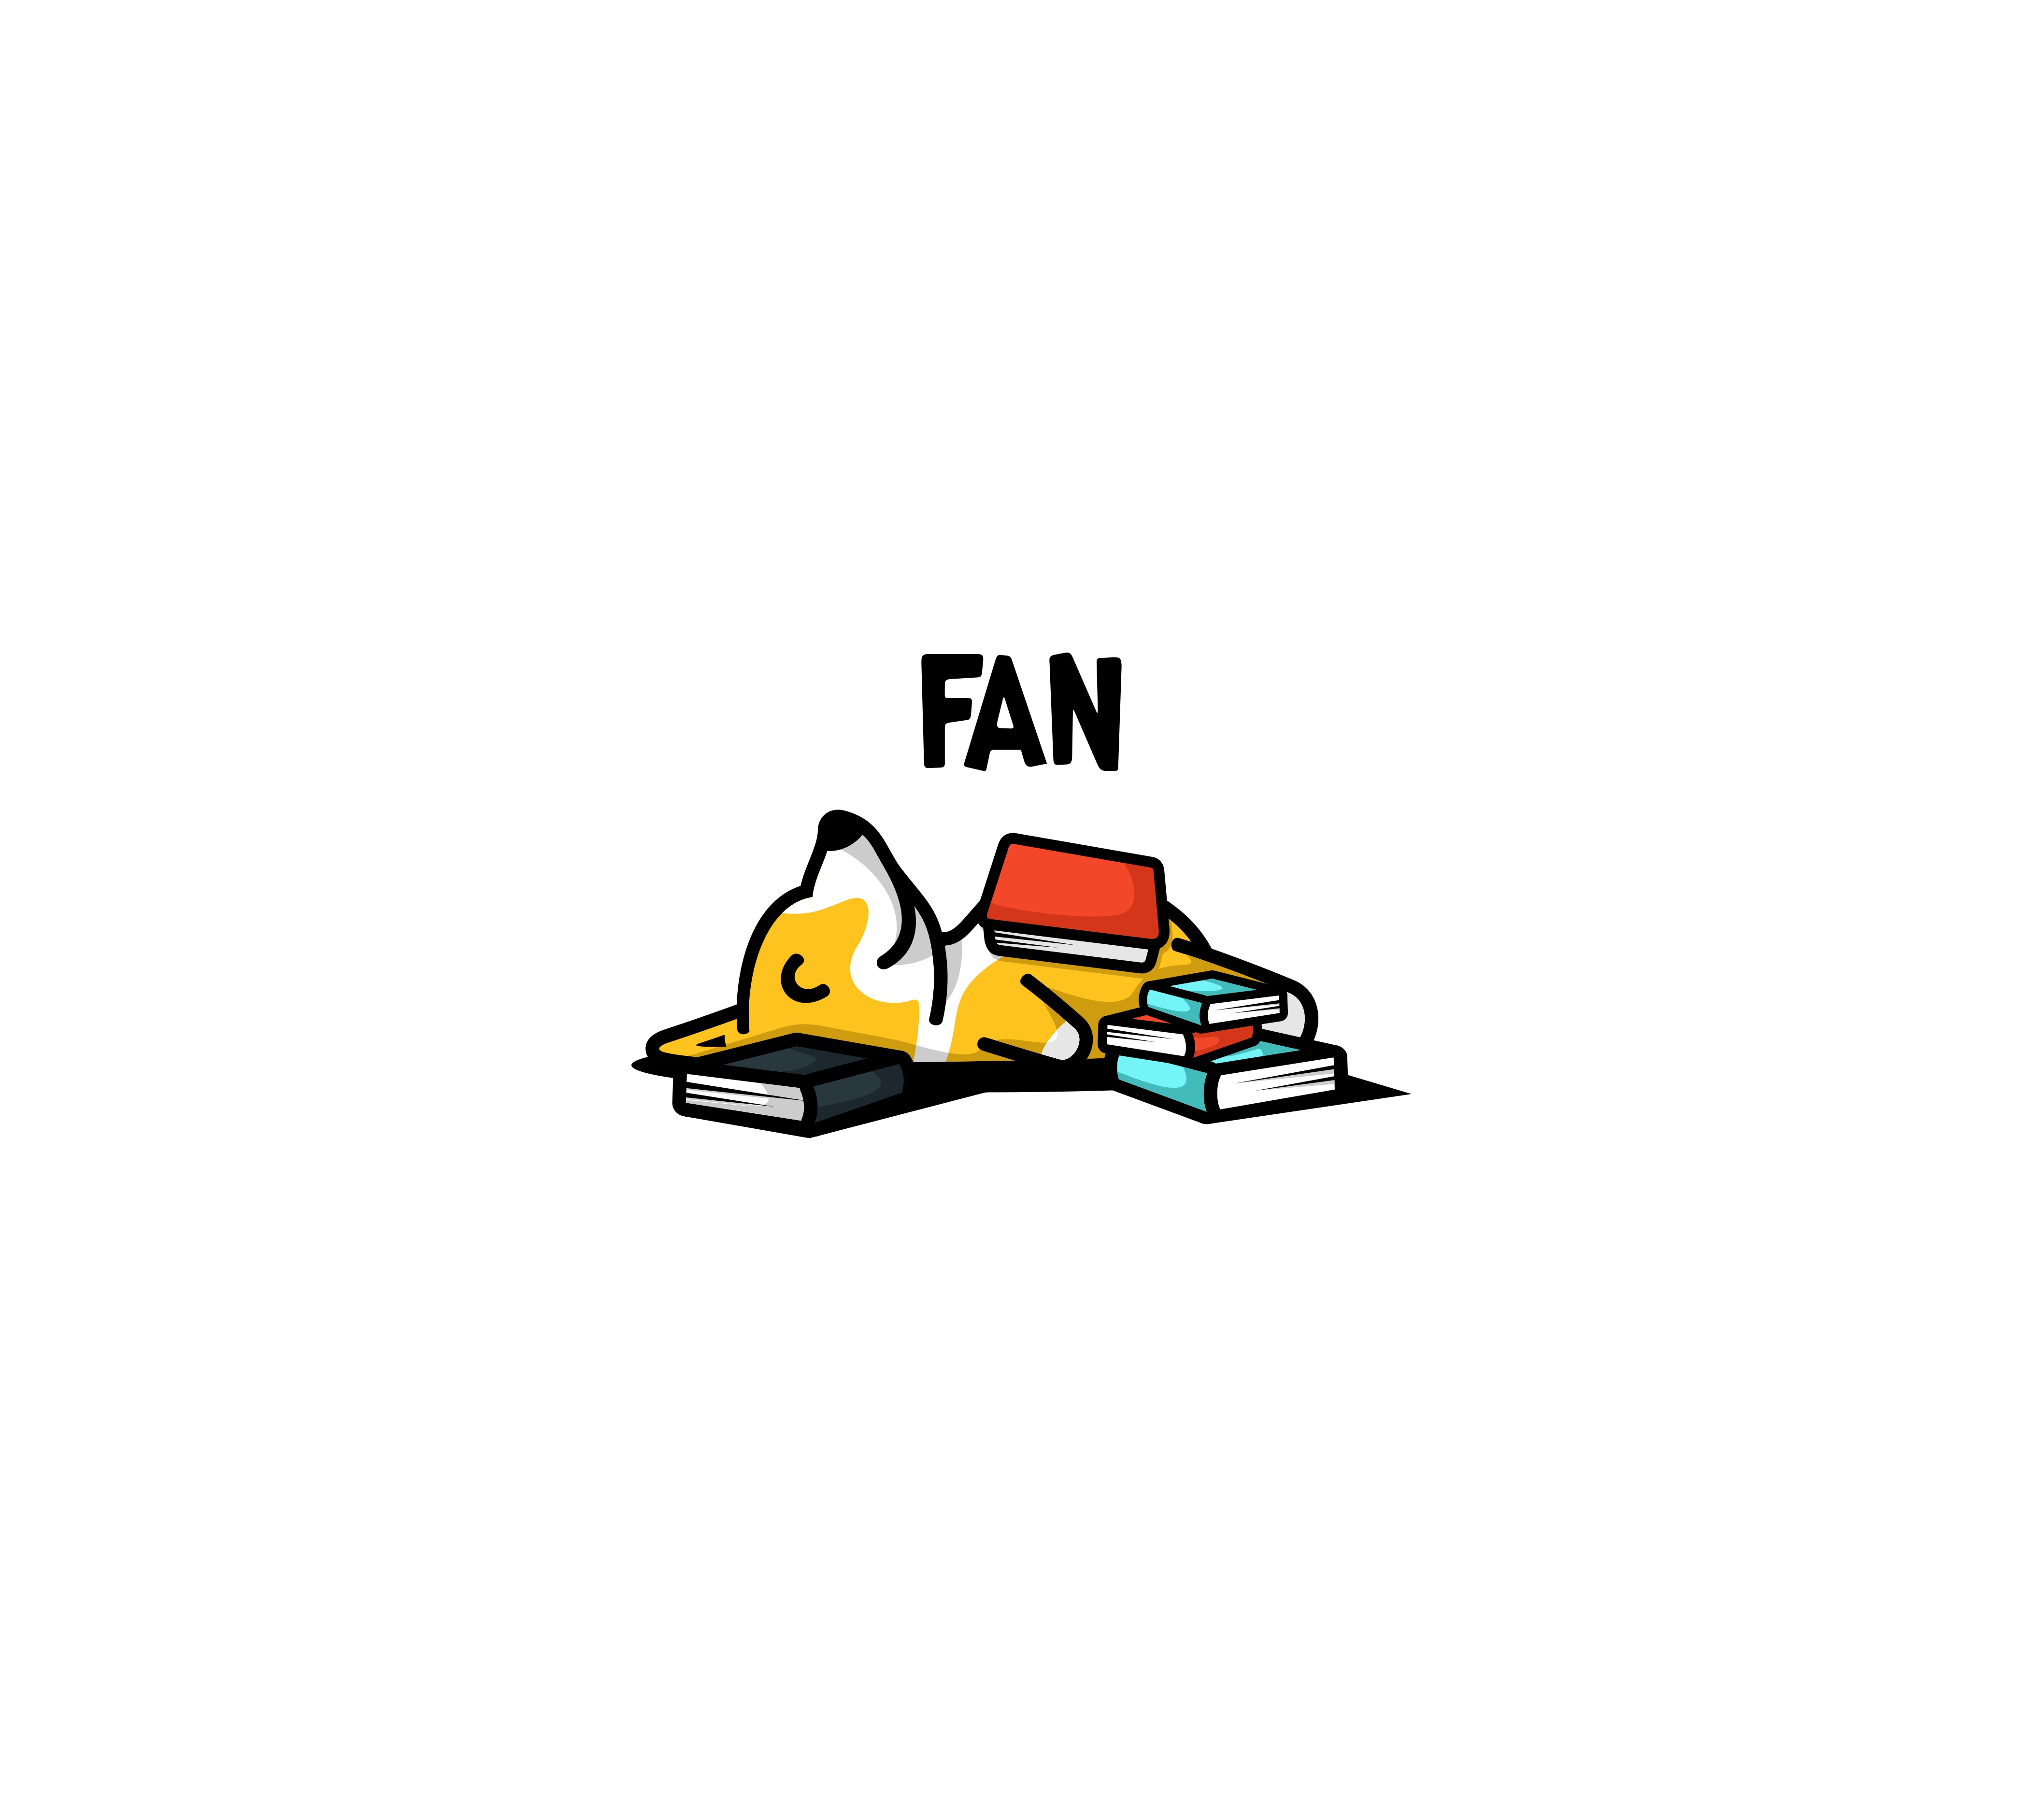 Book Lover's app desires a loveable cartoon character logo